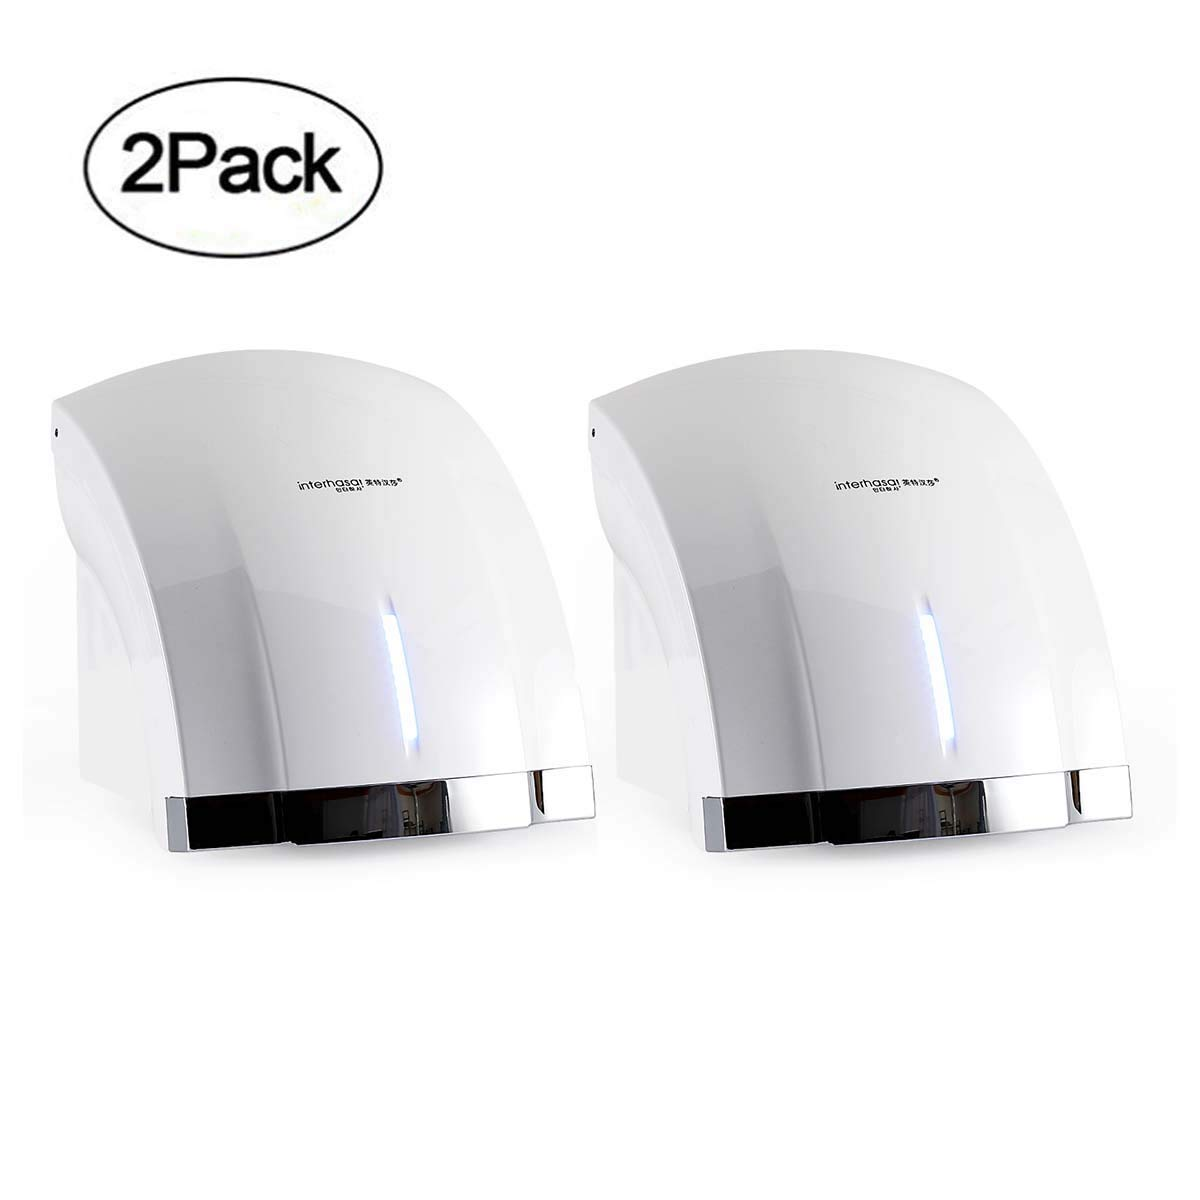 Interhasa! Premium Quality High Speed 1800W Automatic Electric Commercial Hand Dryer (2 pack-110V) color:white by interhasa!